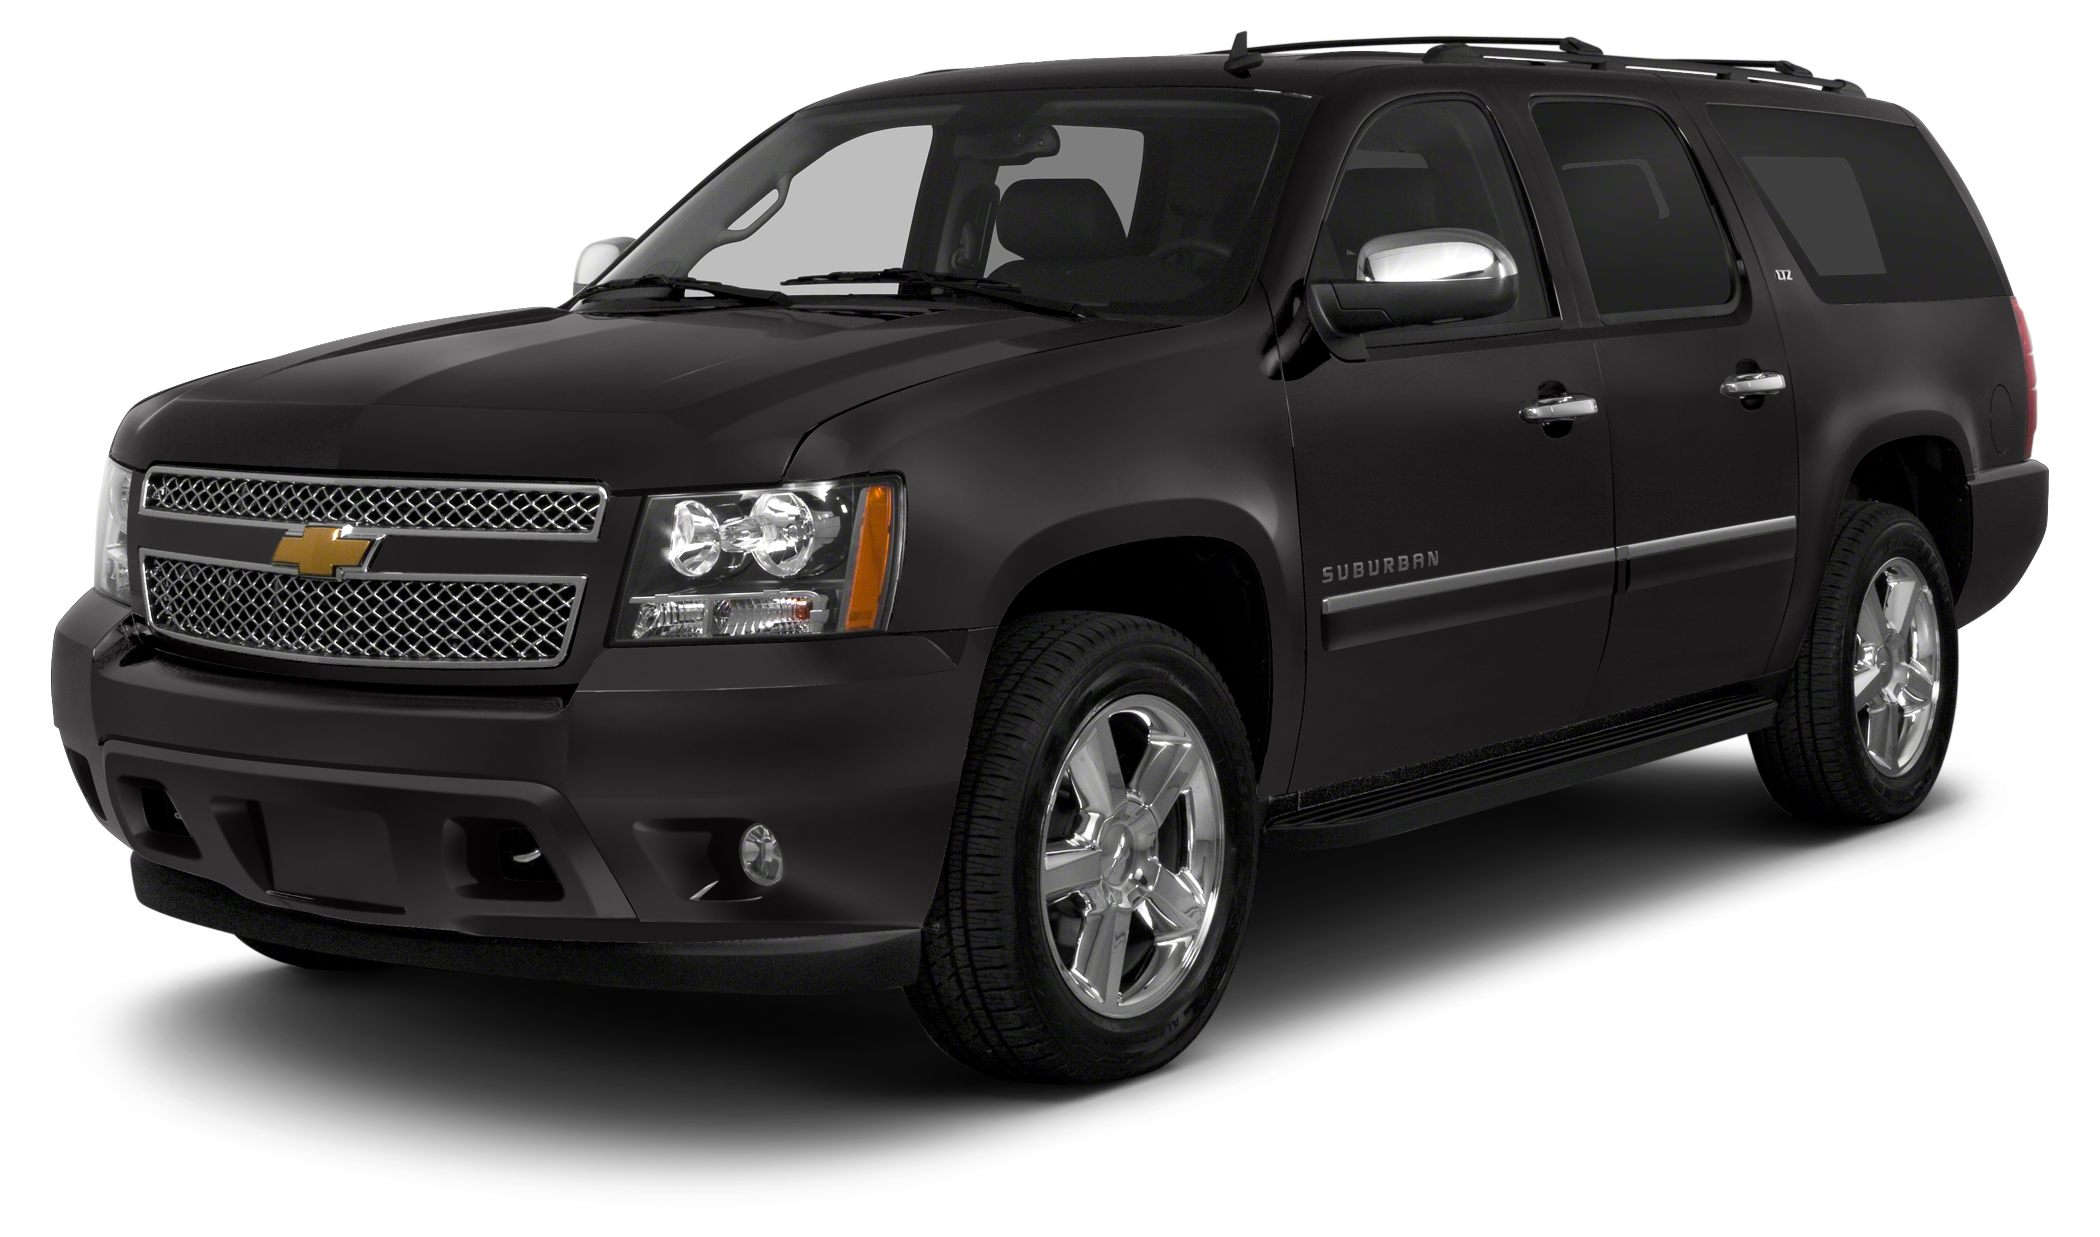 2013 Chevrolet Suburban 1500 LTZ Lake Keowee Chrysler Dodge Jeep is excited to offer this 2013 Che